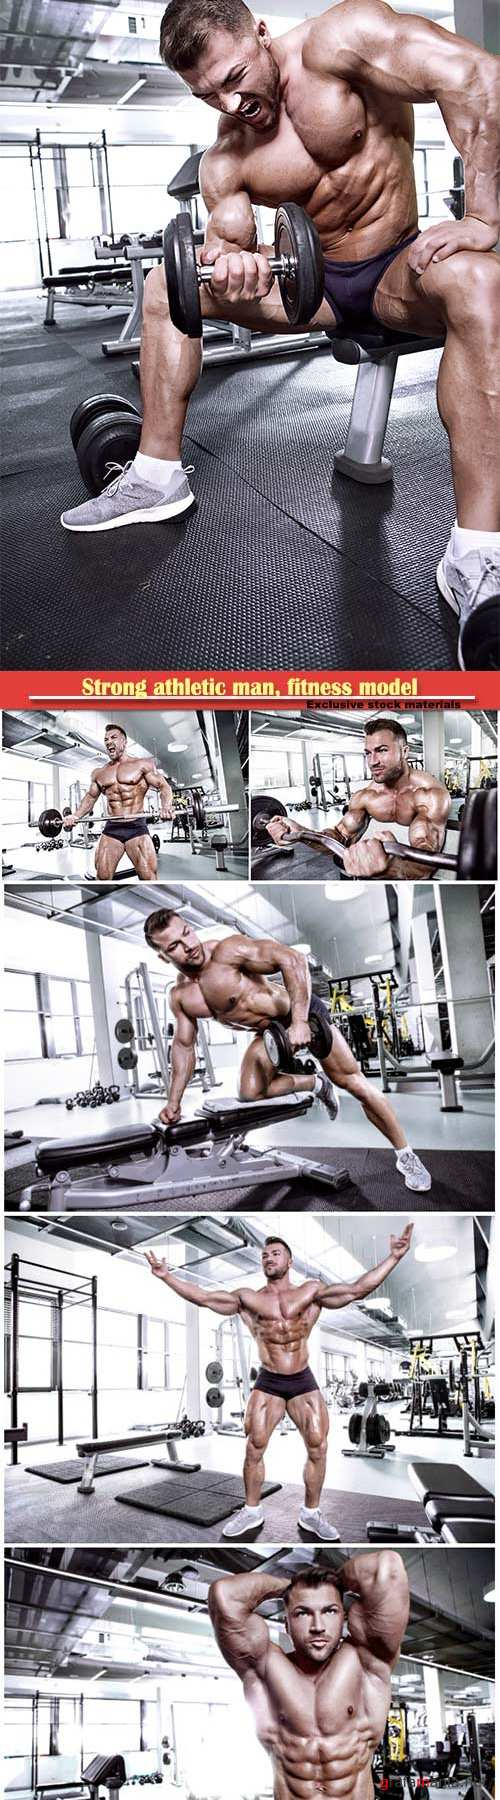 Strong athletic man, fitness model